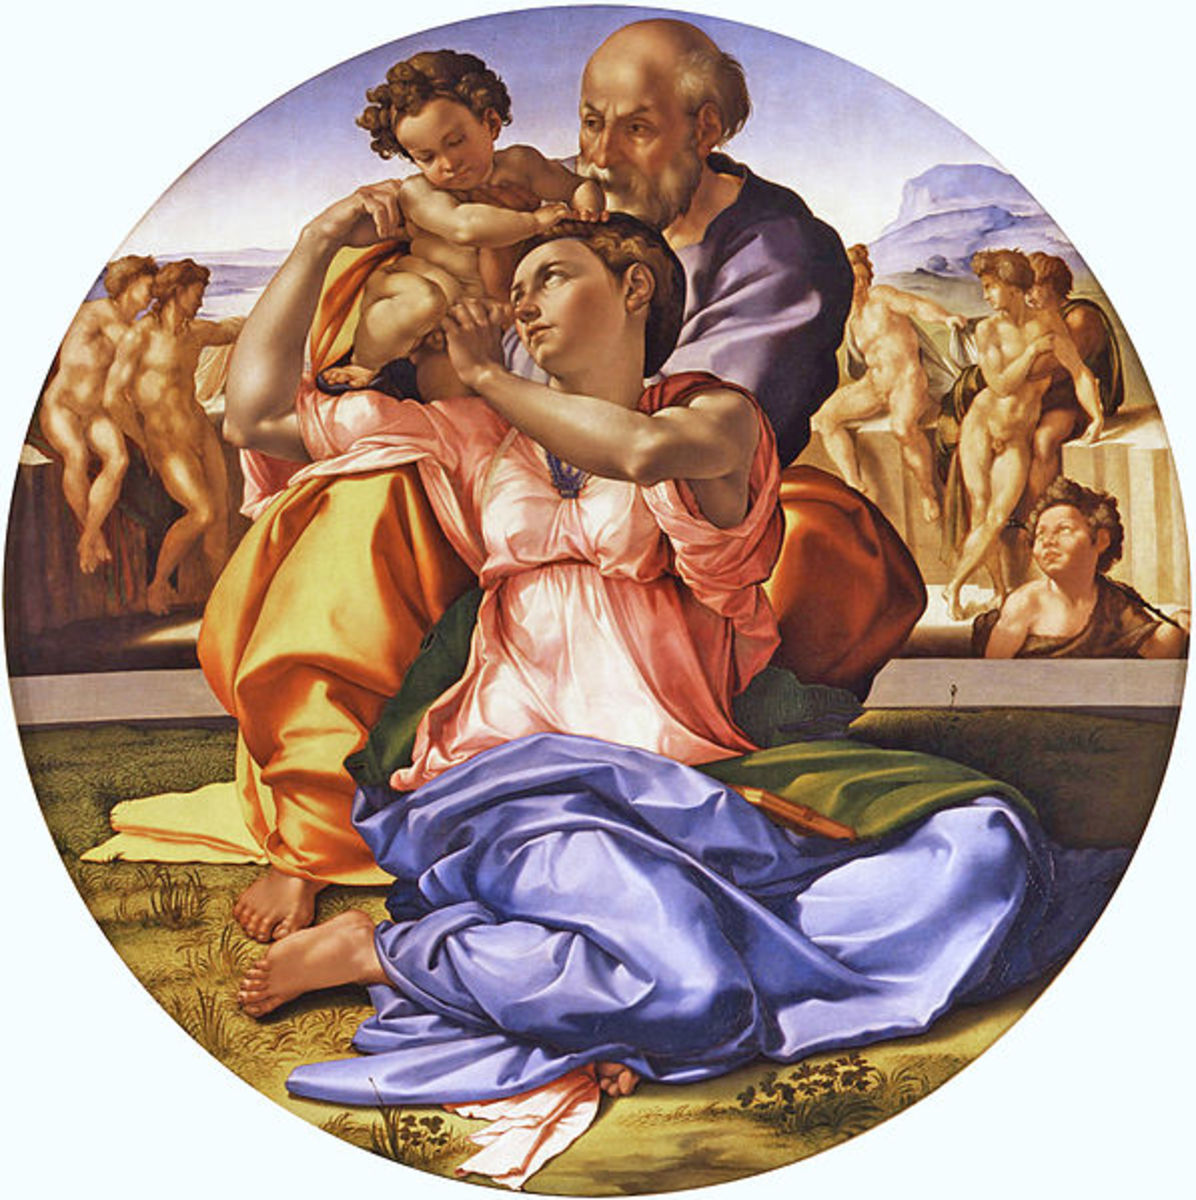 Michelangelo, the Holy Family, known as Doni Tondo (a. 1507), Florence Uffizi - Size: diameter 120 cm (47.24 in), 172 cm (67.72 in) with frame